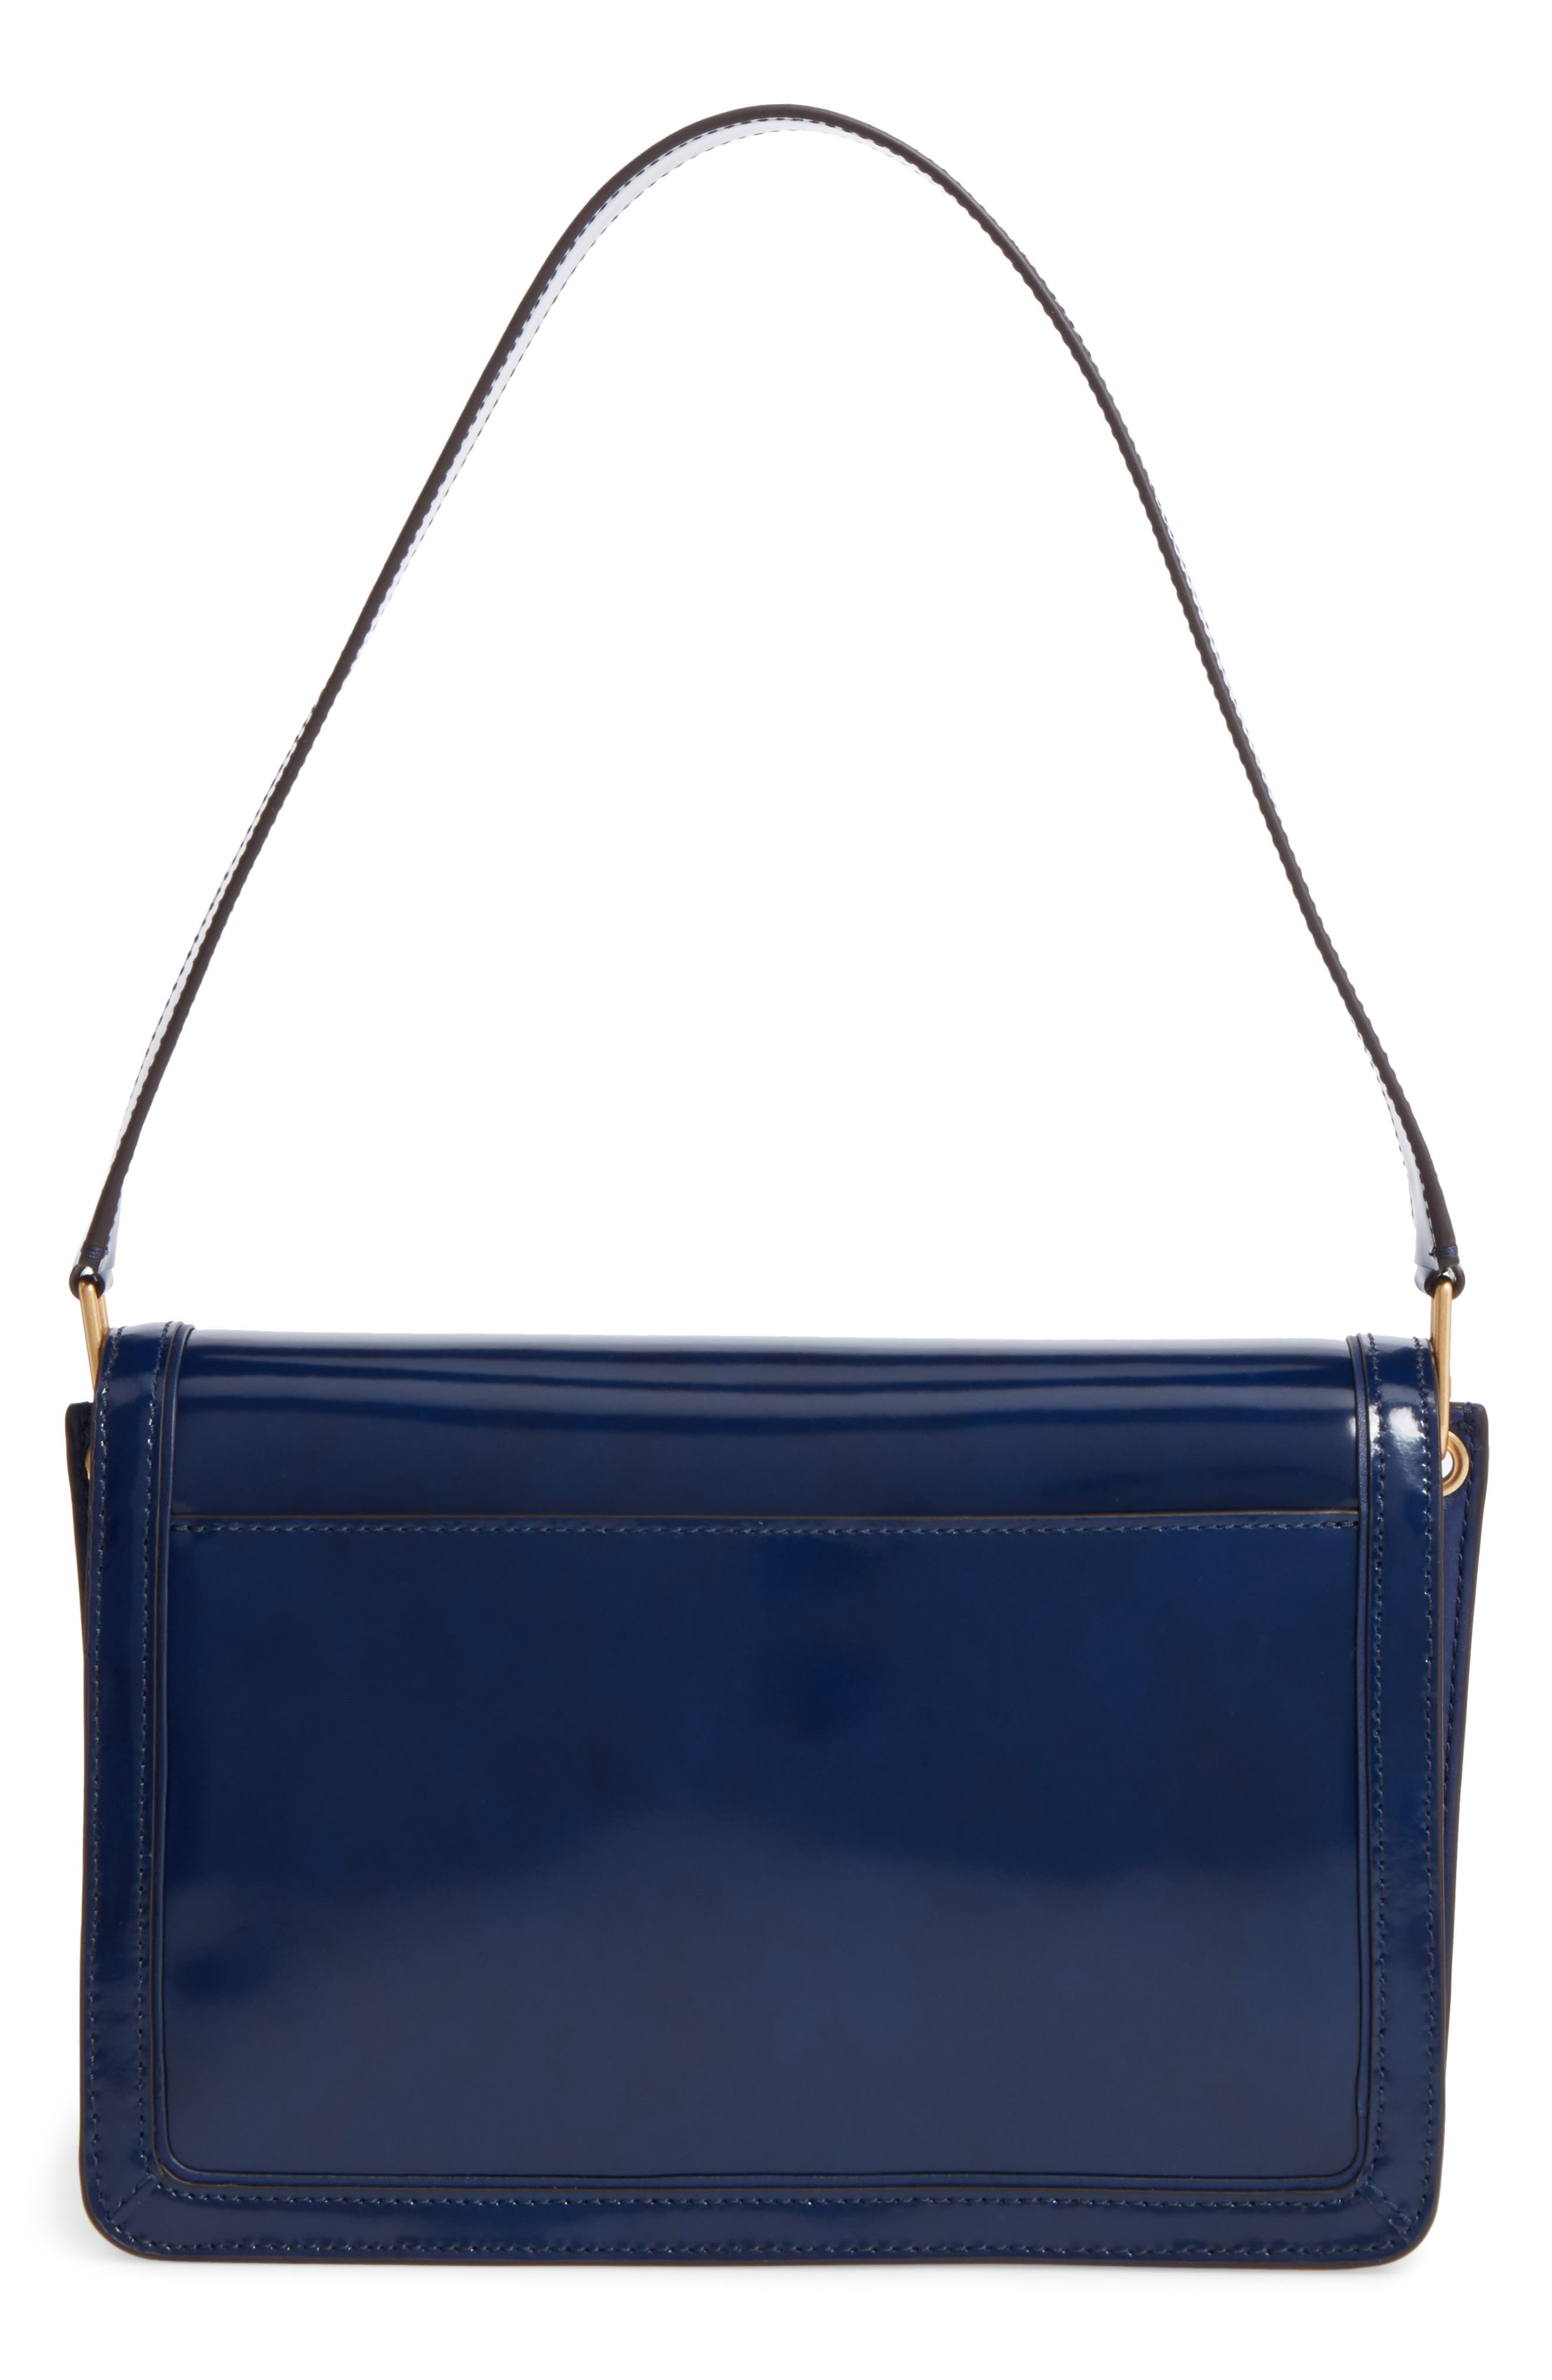 Alternate Image 3  - Tory Burch Juliette Leather Shoulder Bag